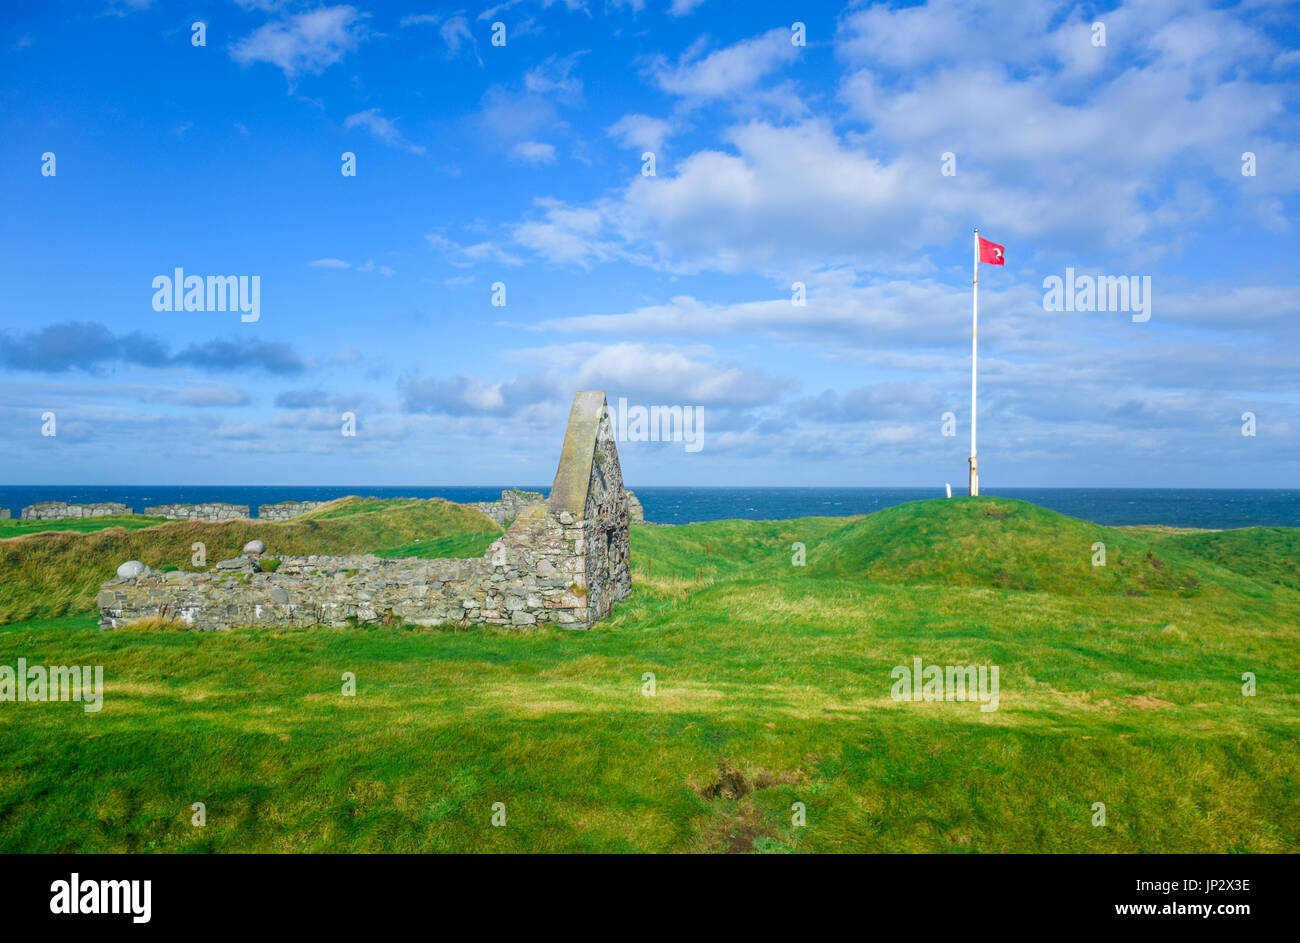 The remains of Peel Castle constructed by vikings on top of Peel hill with Isle of Man national flag on a clear blue sky - Stock Image